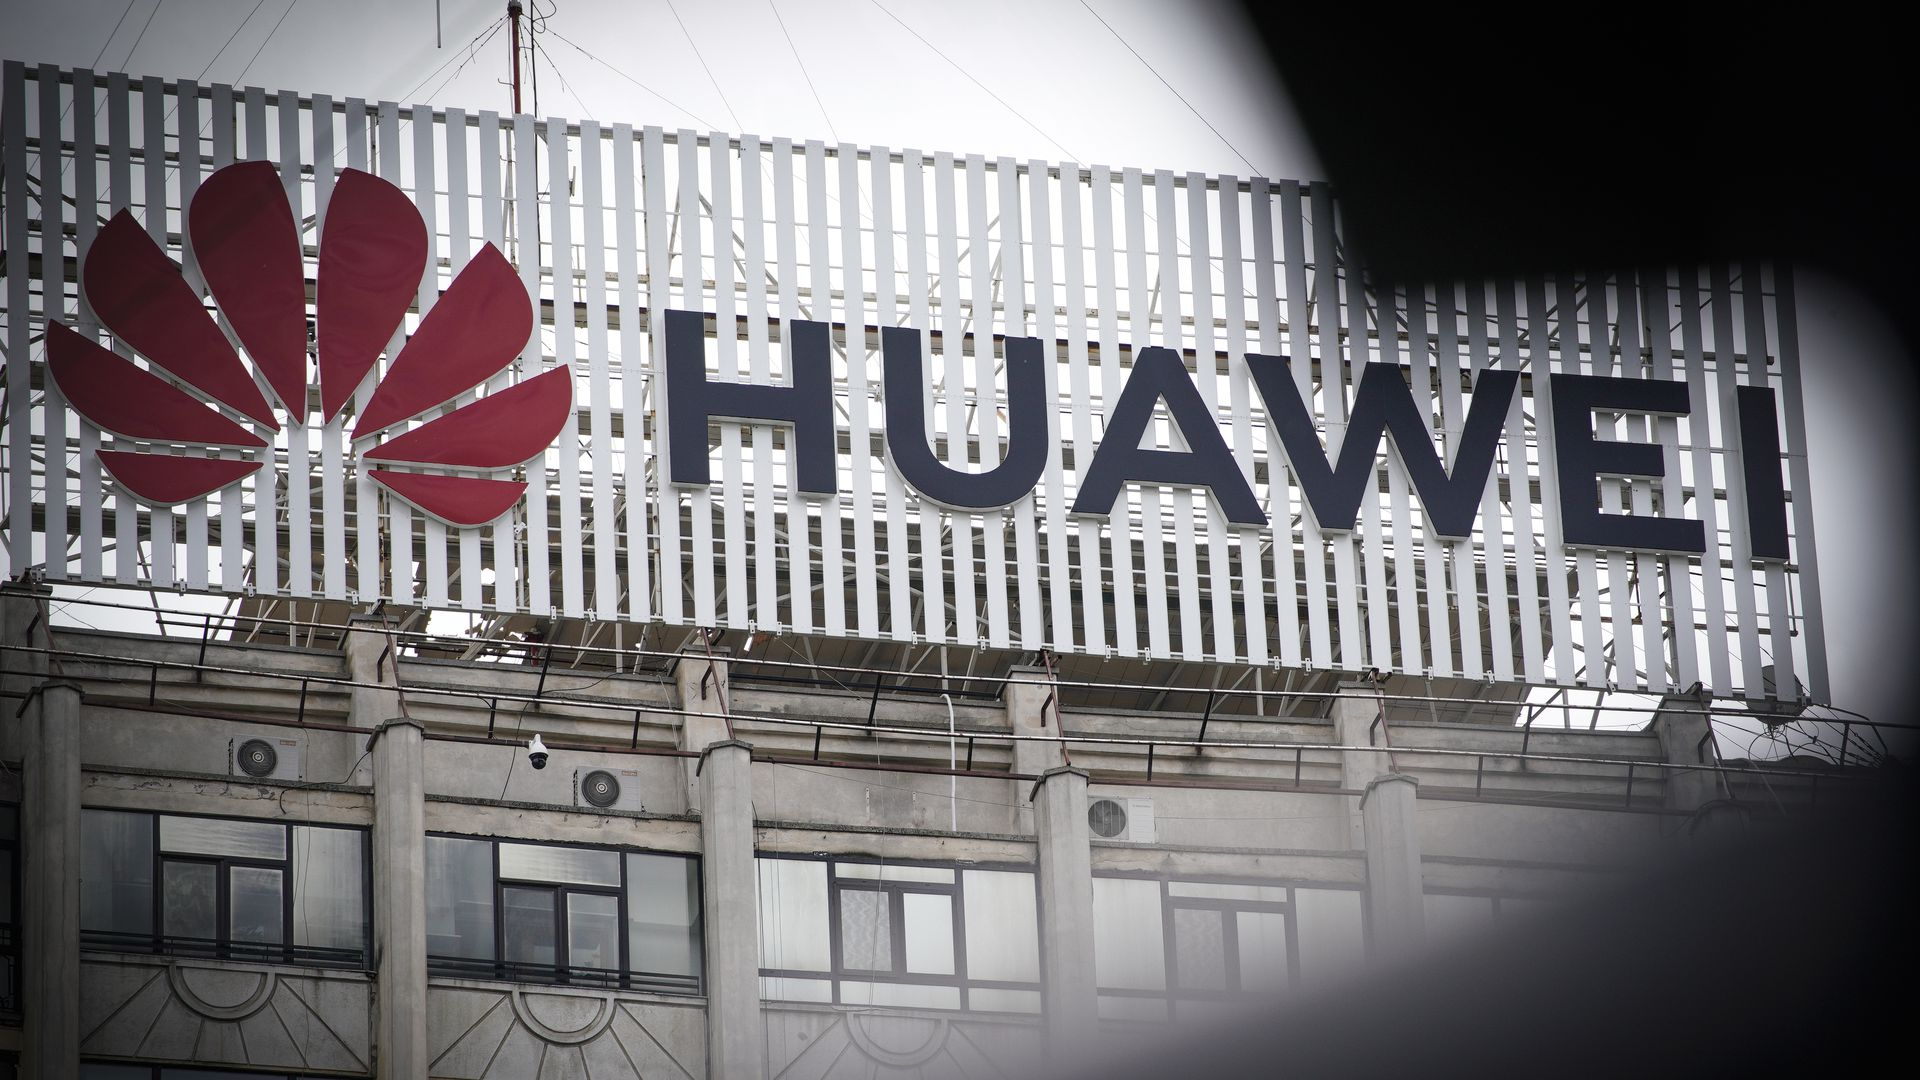 In this image, the Huawek logo is seen on the side of a building on a foggy day.